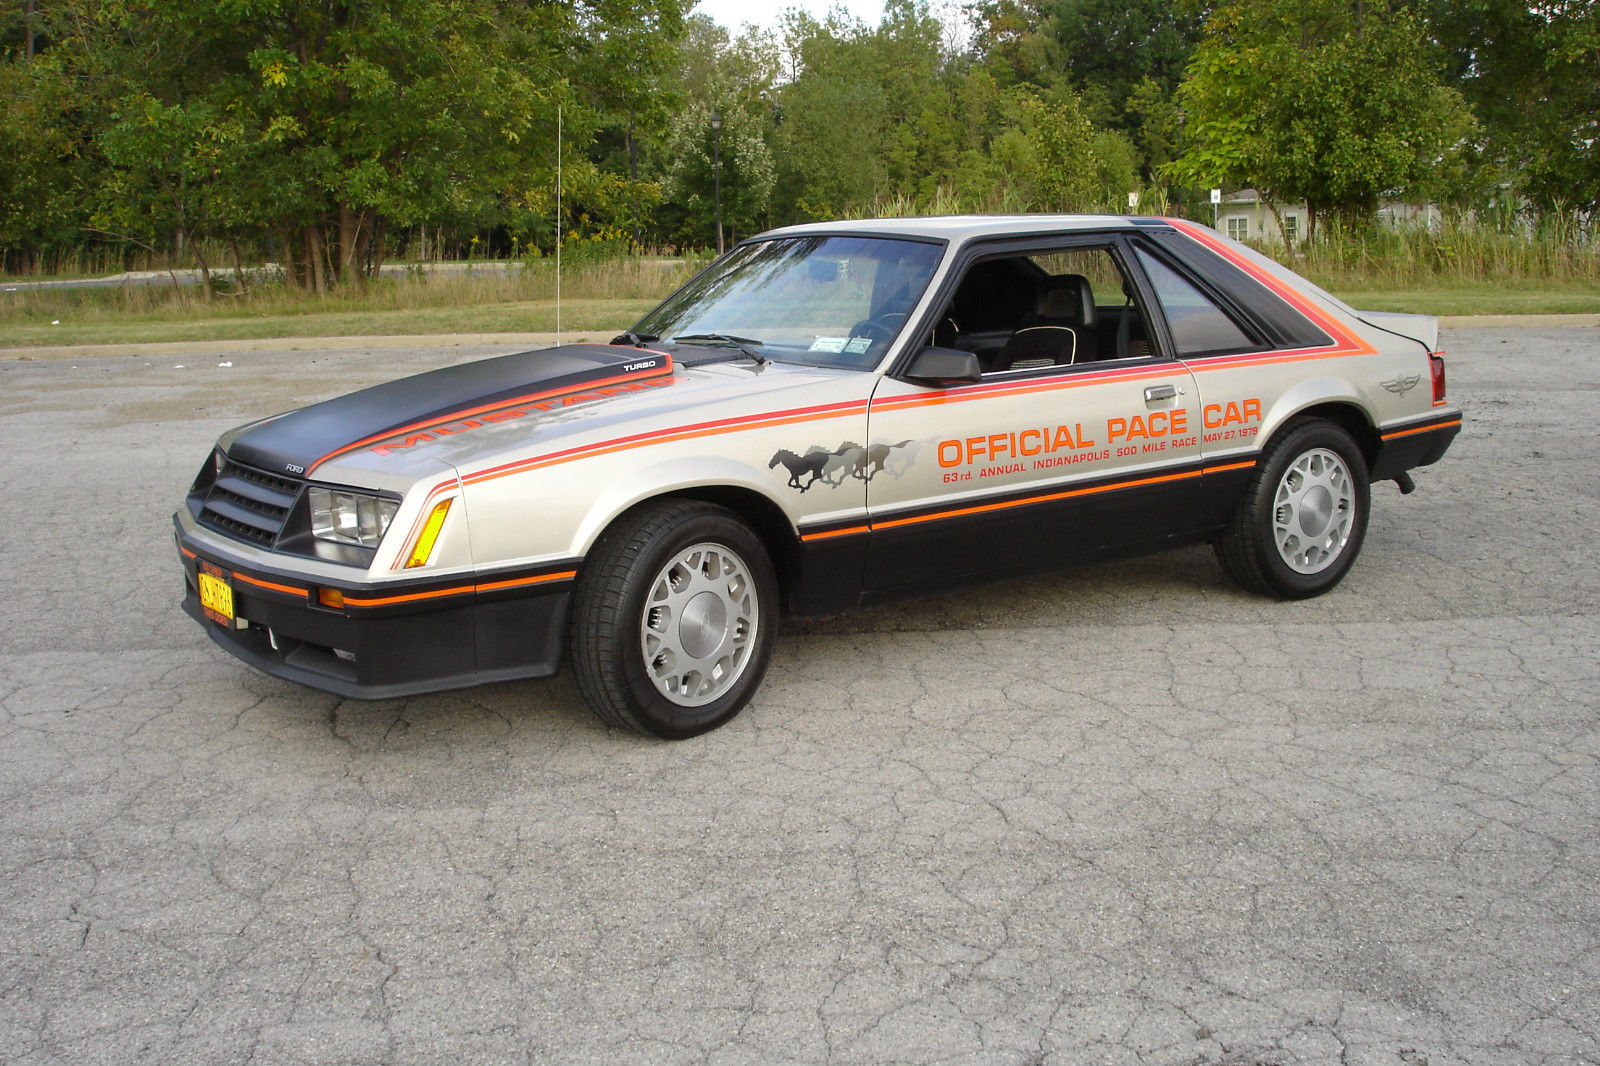 1979 Ford Mustang Turbo Engine 2.3 Modify